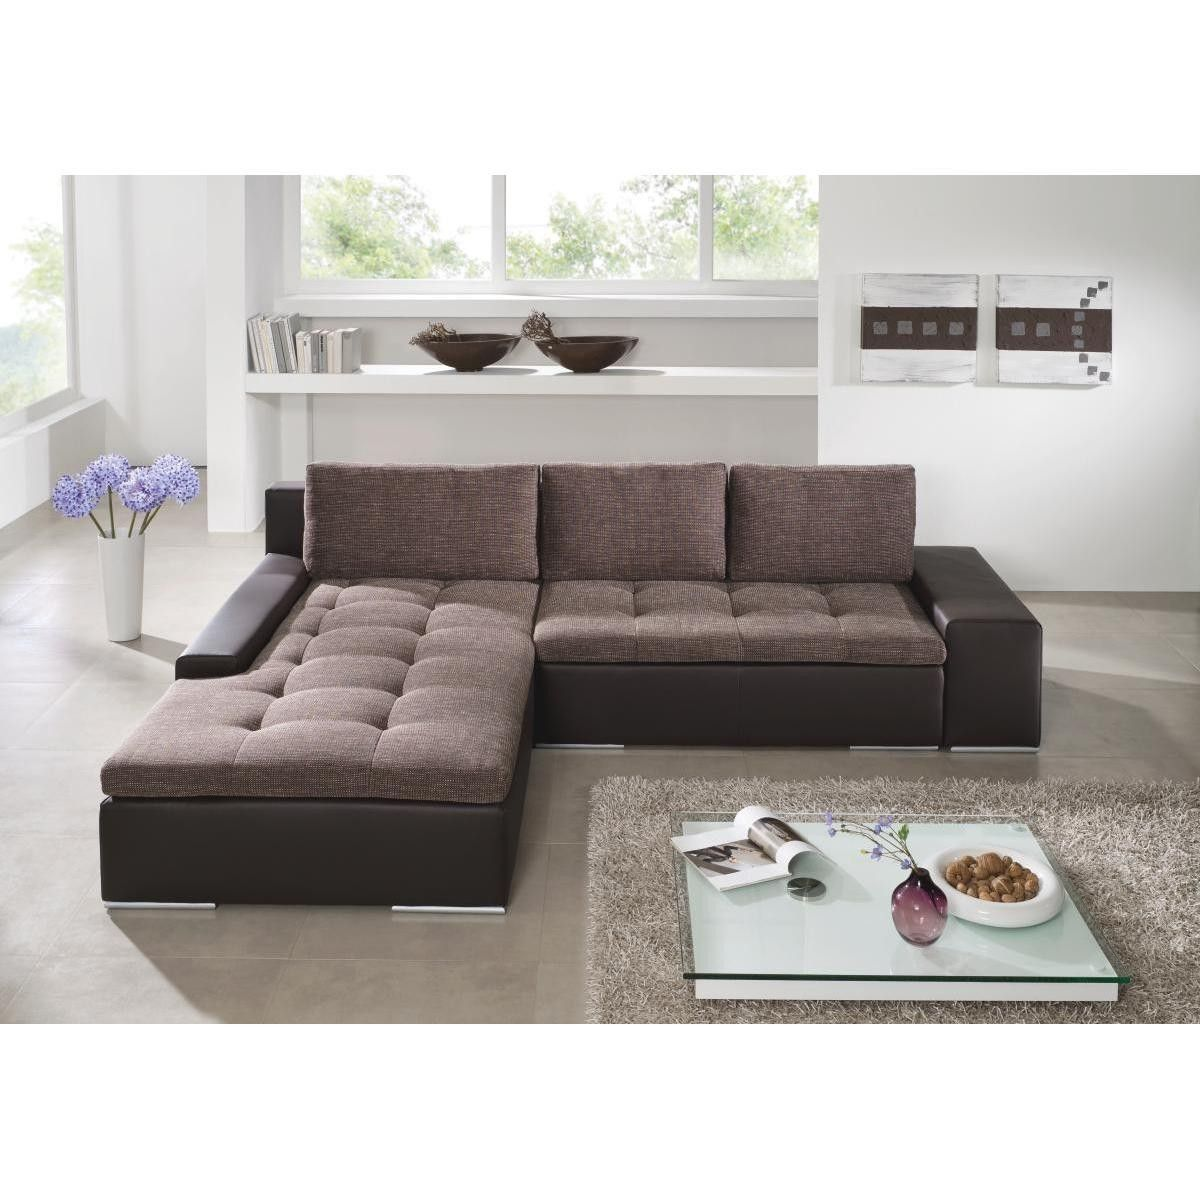 Ecksofa Bali Gray Couch Like The Style Living Room Couch Sofas Moderne